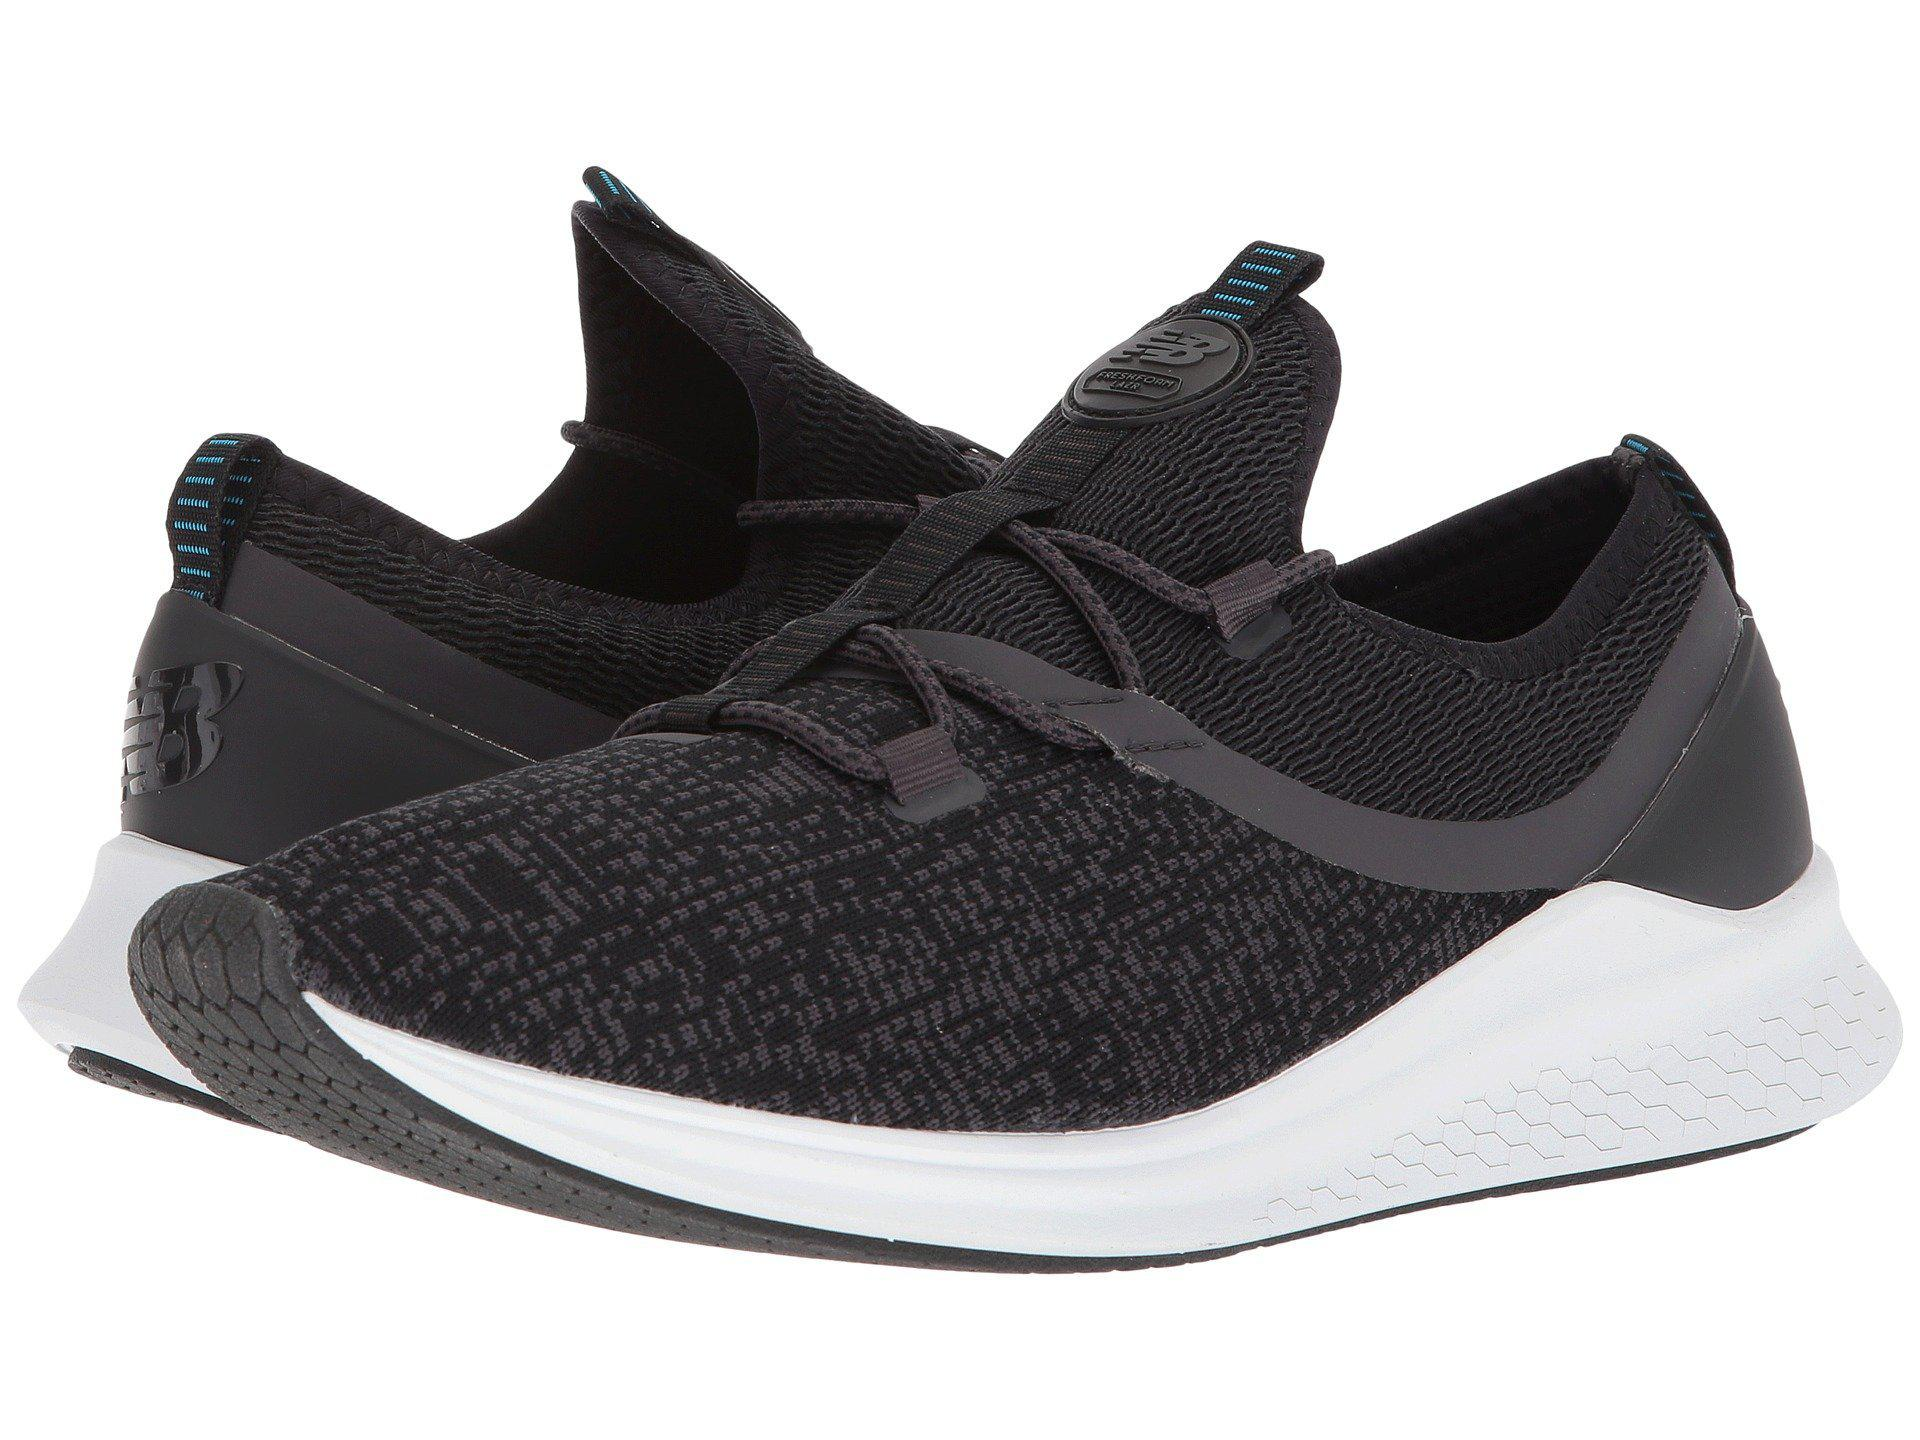 FRESH FOAM LAZR SPORT - FOOTWEAR - Low-tops & sneakers New Balance